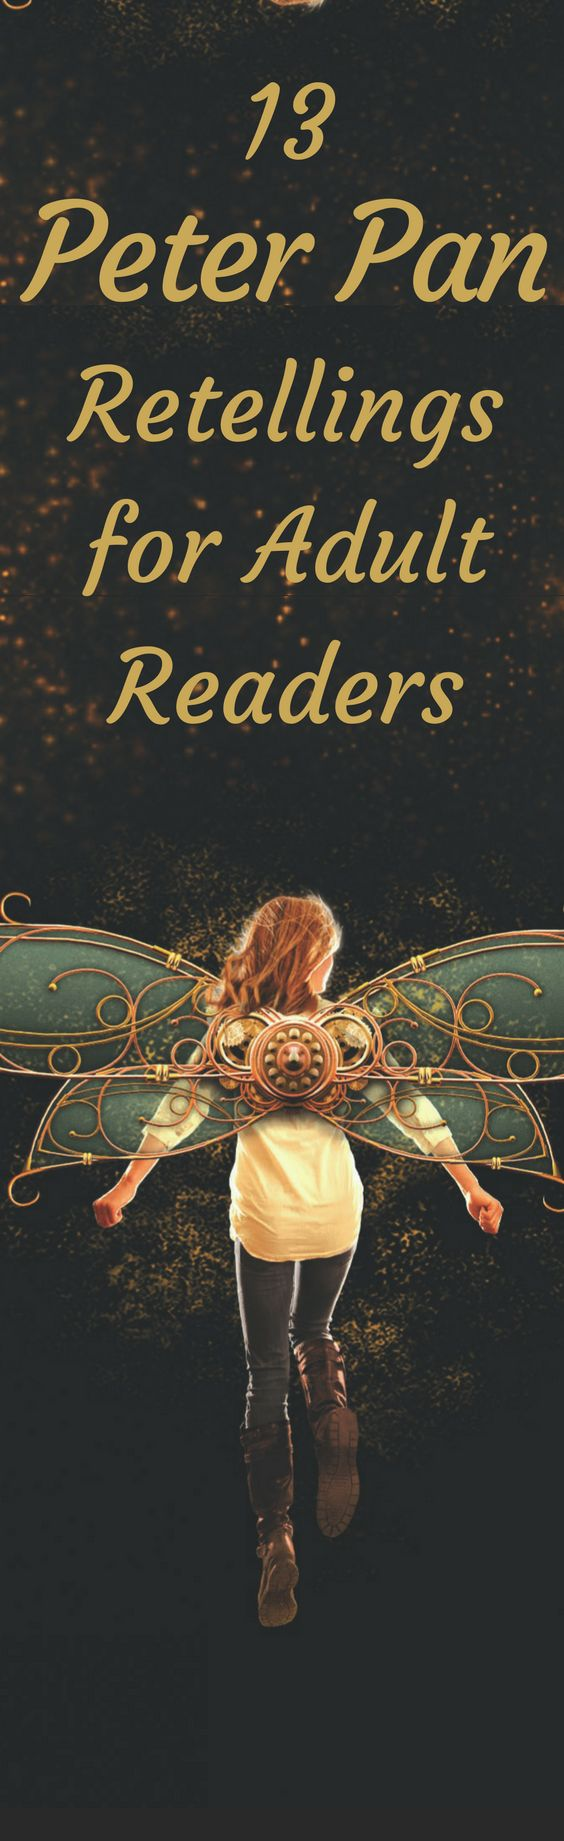 13 fairytale retellings for teens or for adult readers. These Peter Pan retellings are magical stories to escape into! Featuring fantasy books, books with romance, and more.